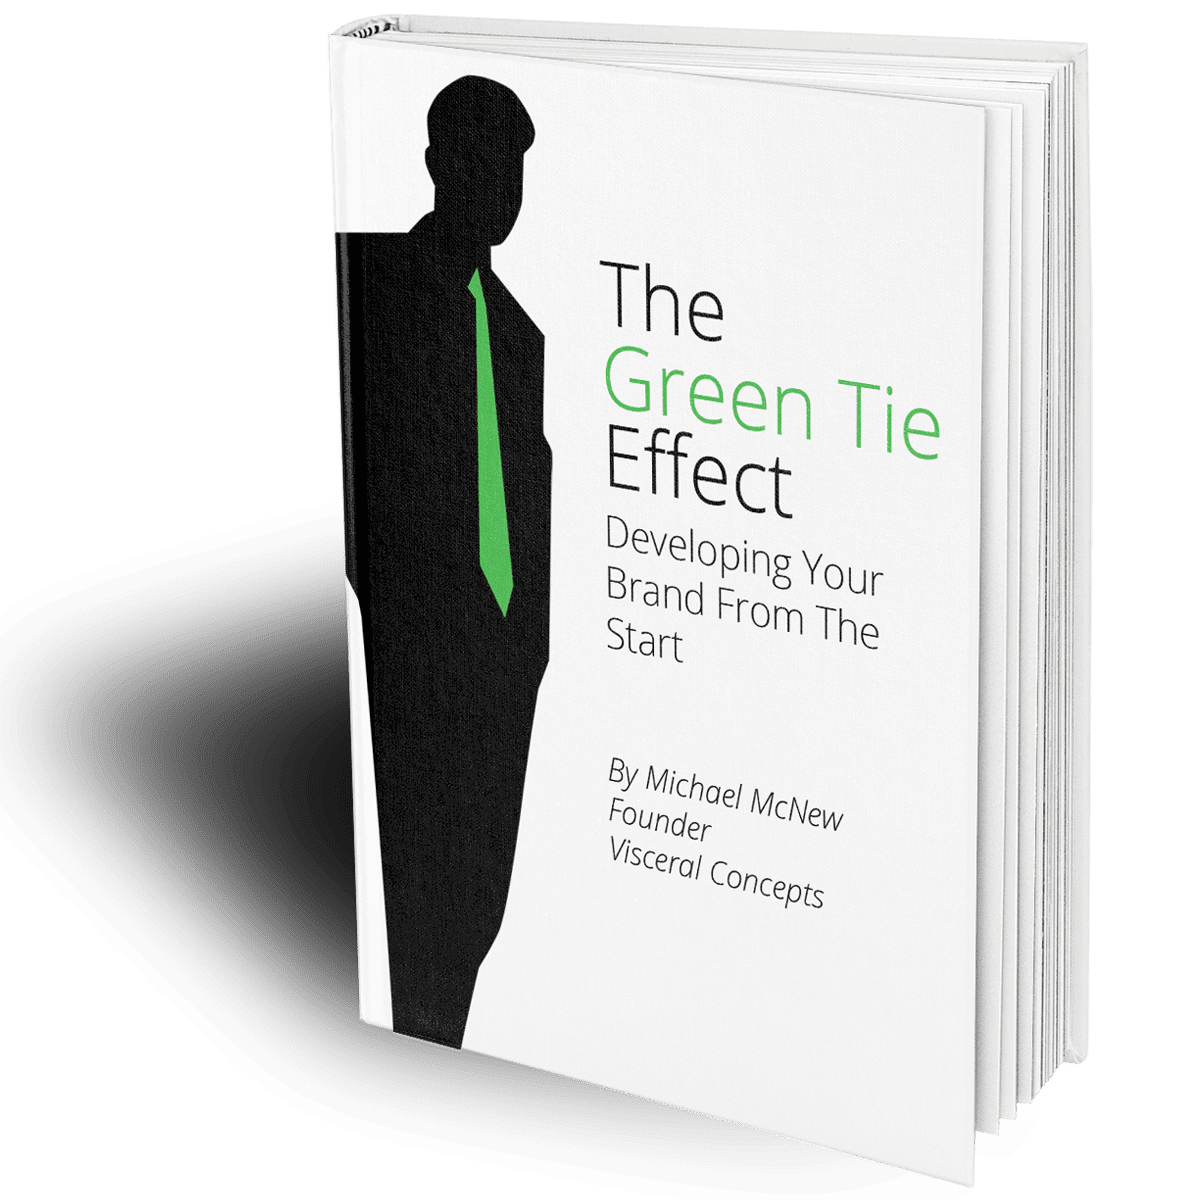 Download The Green Tie Effect Now!